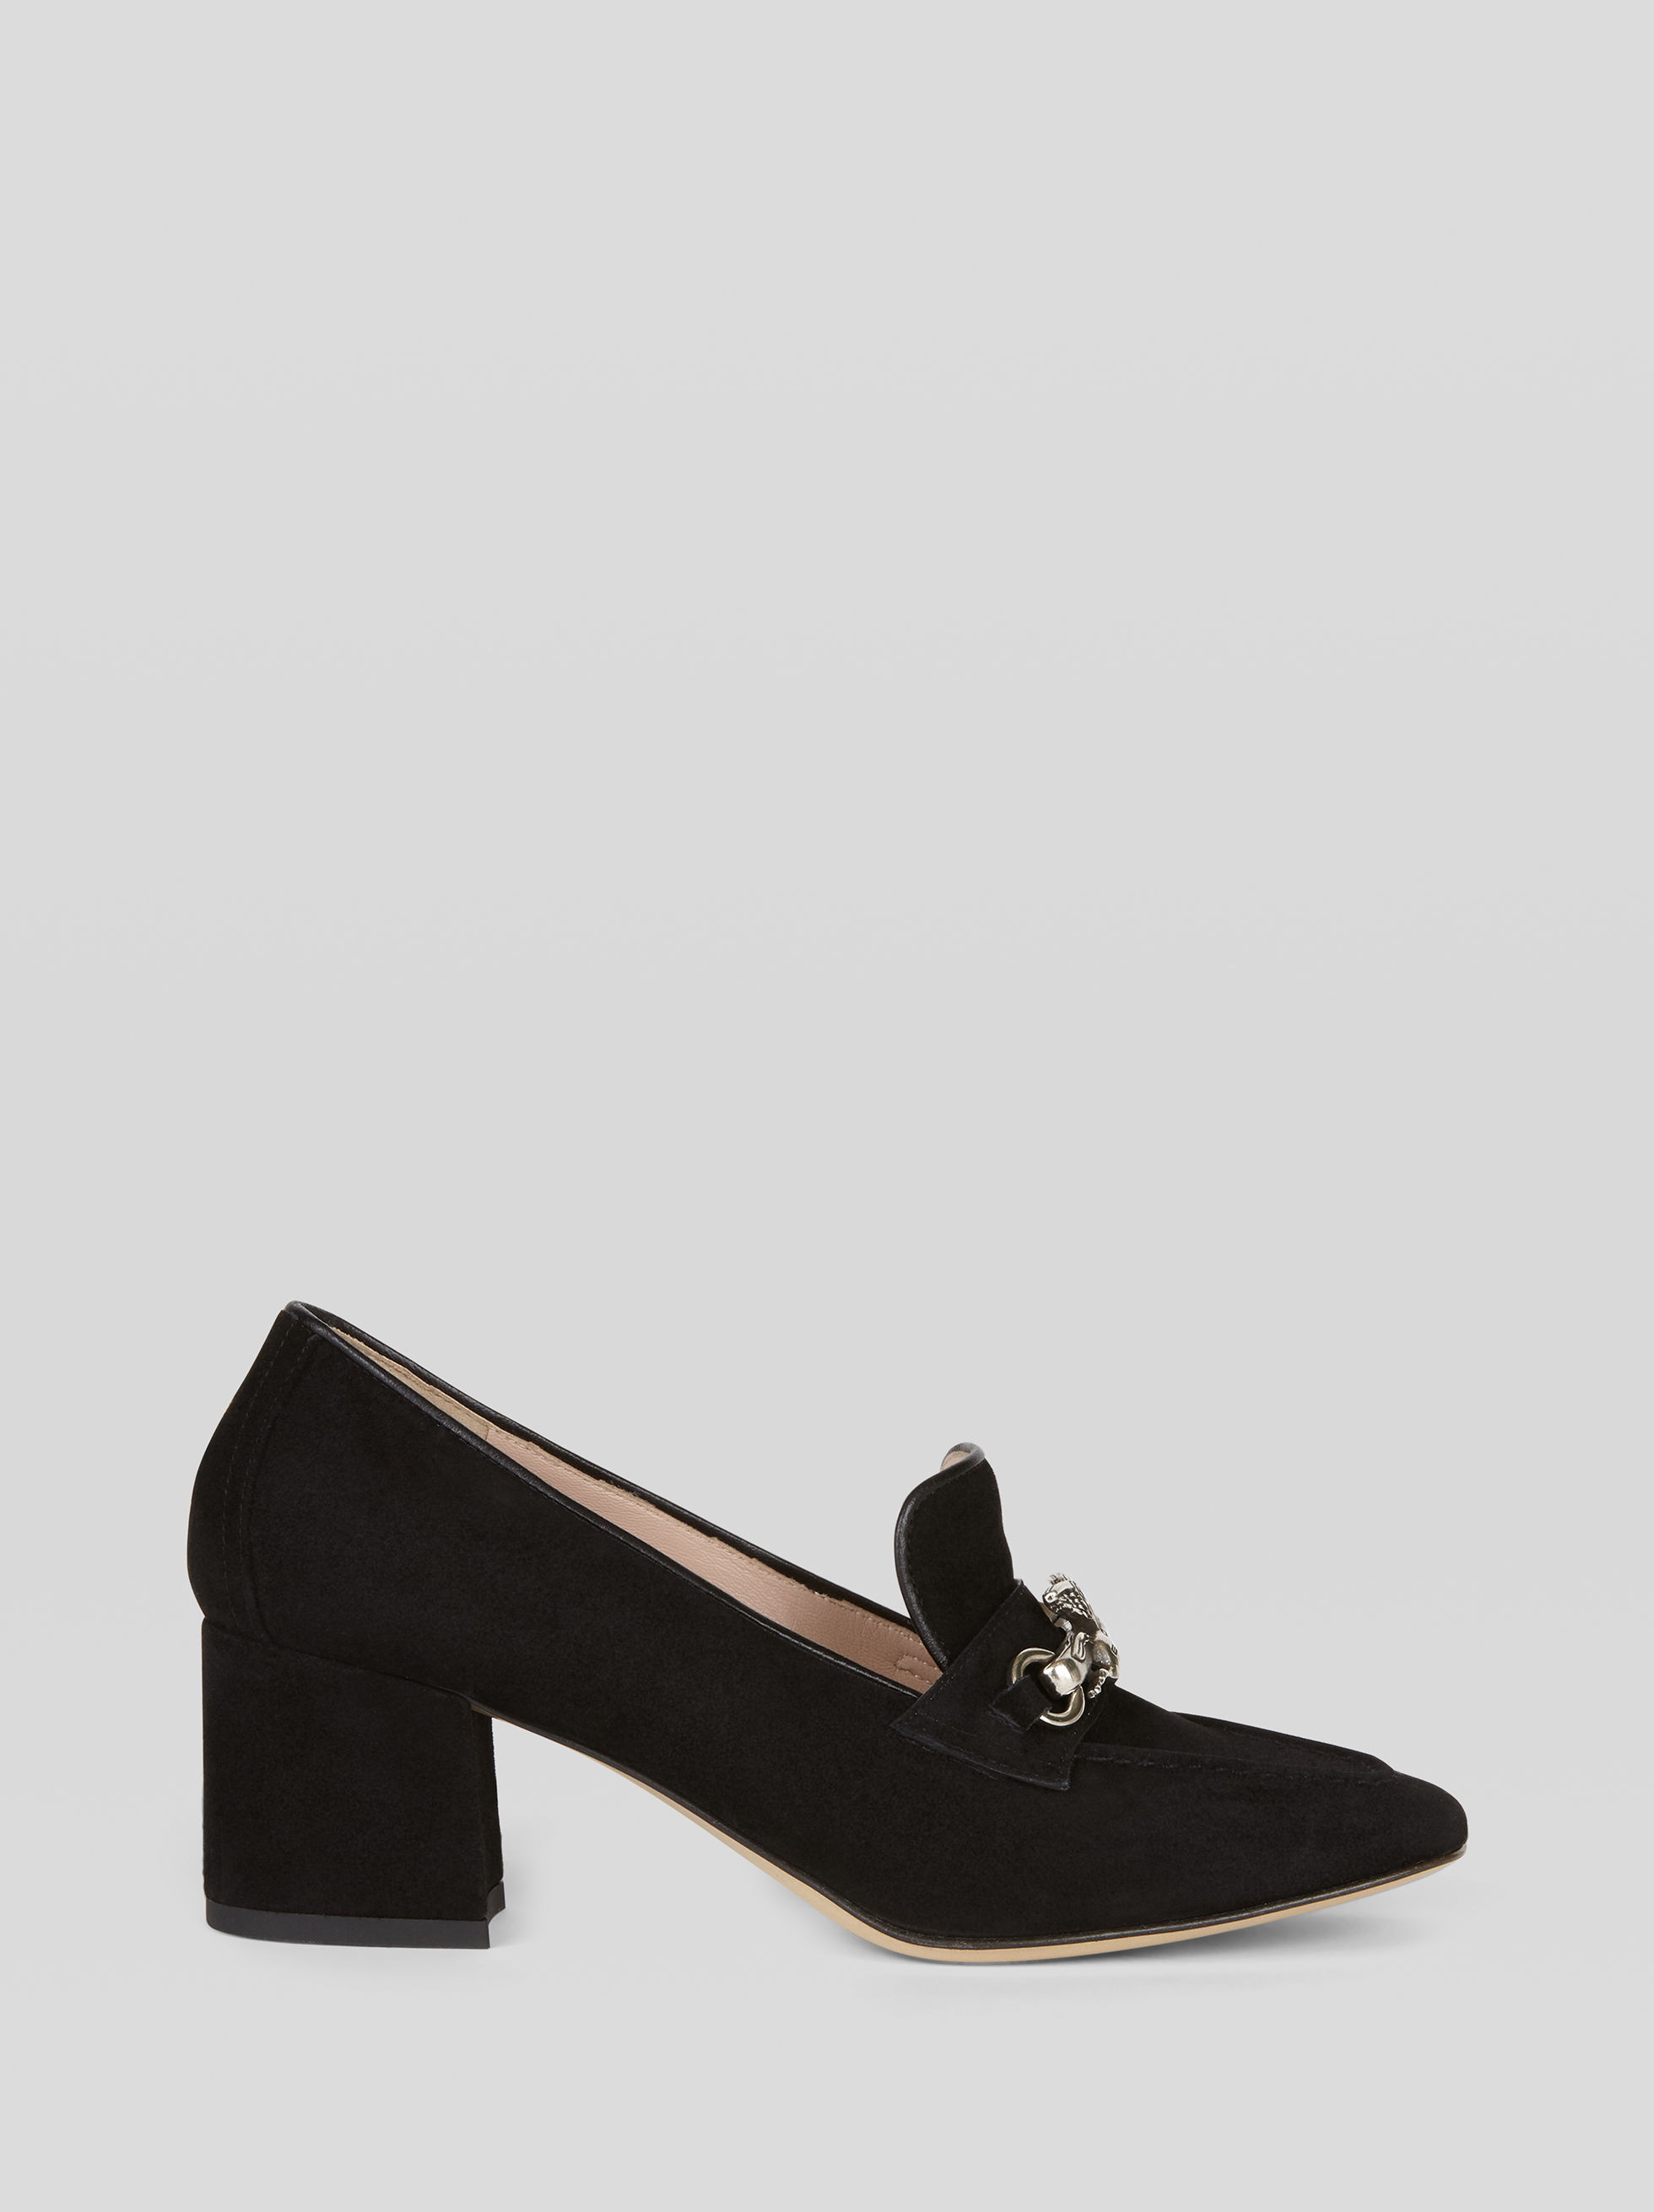 SUEDE COURT SHOE WITH PEGASO